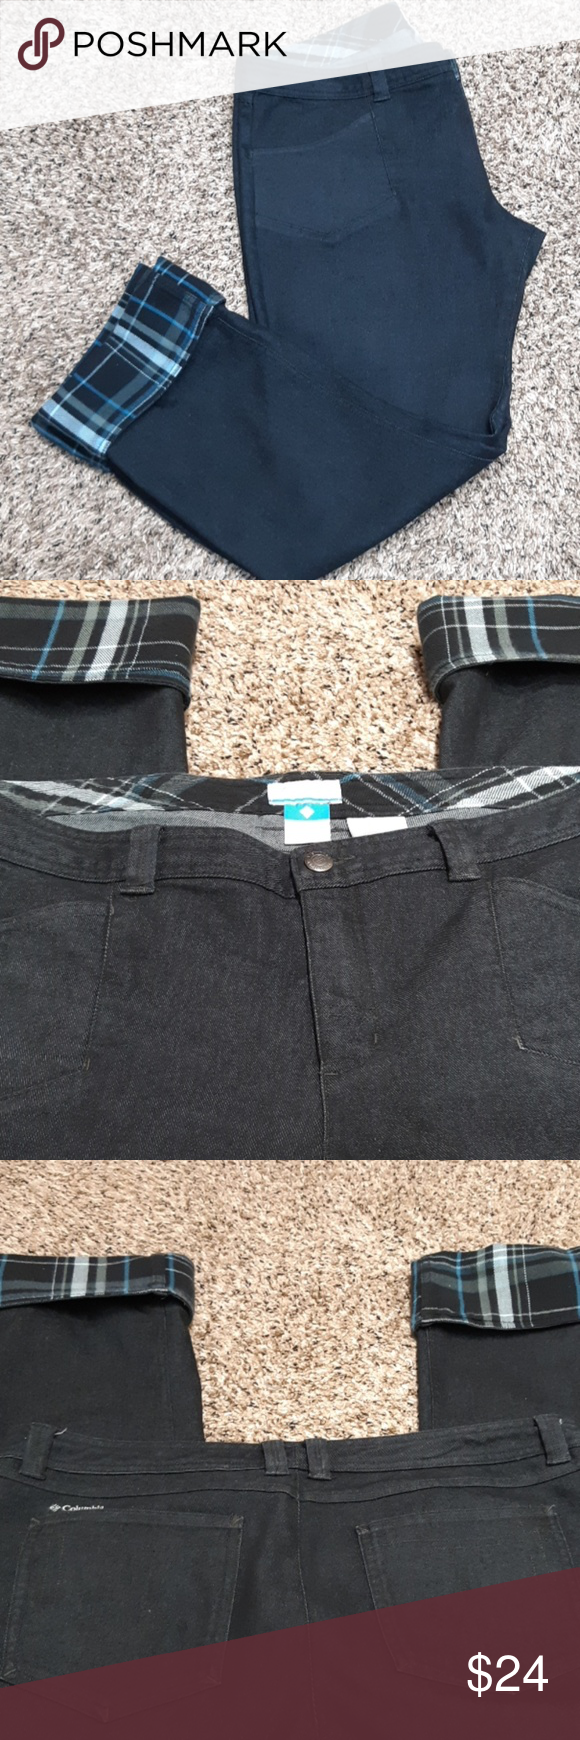 How To Hem Pants With A Cuff Columbia Rolled Cuff Pants Euc Rolled Cuff Pants Cuffed Pants Rolled Cuff